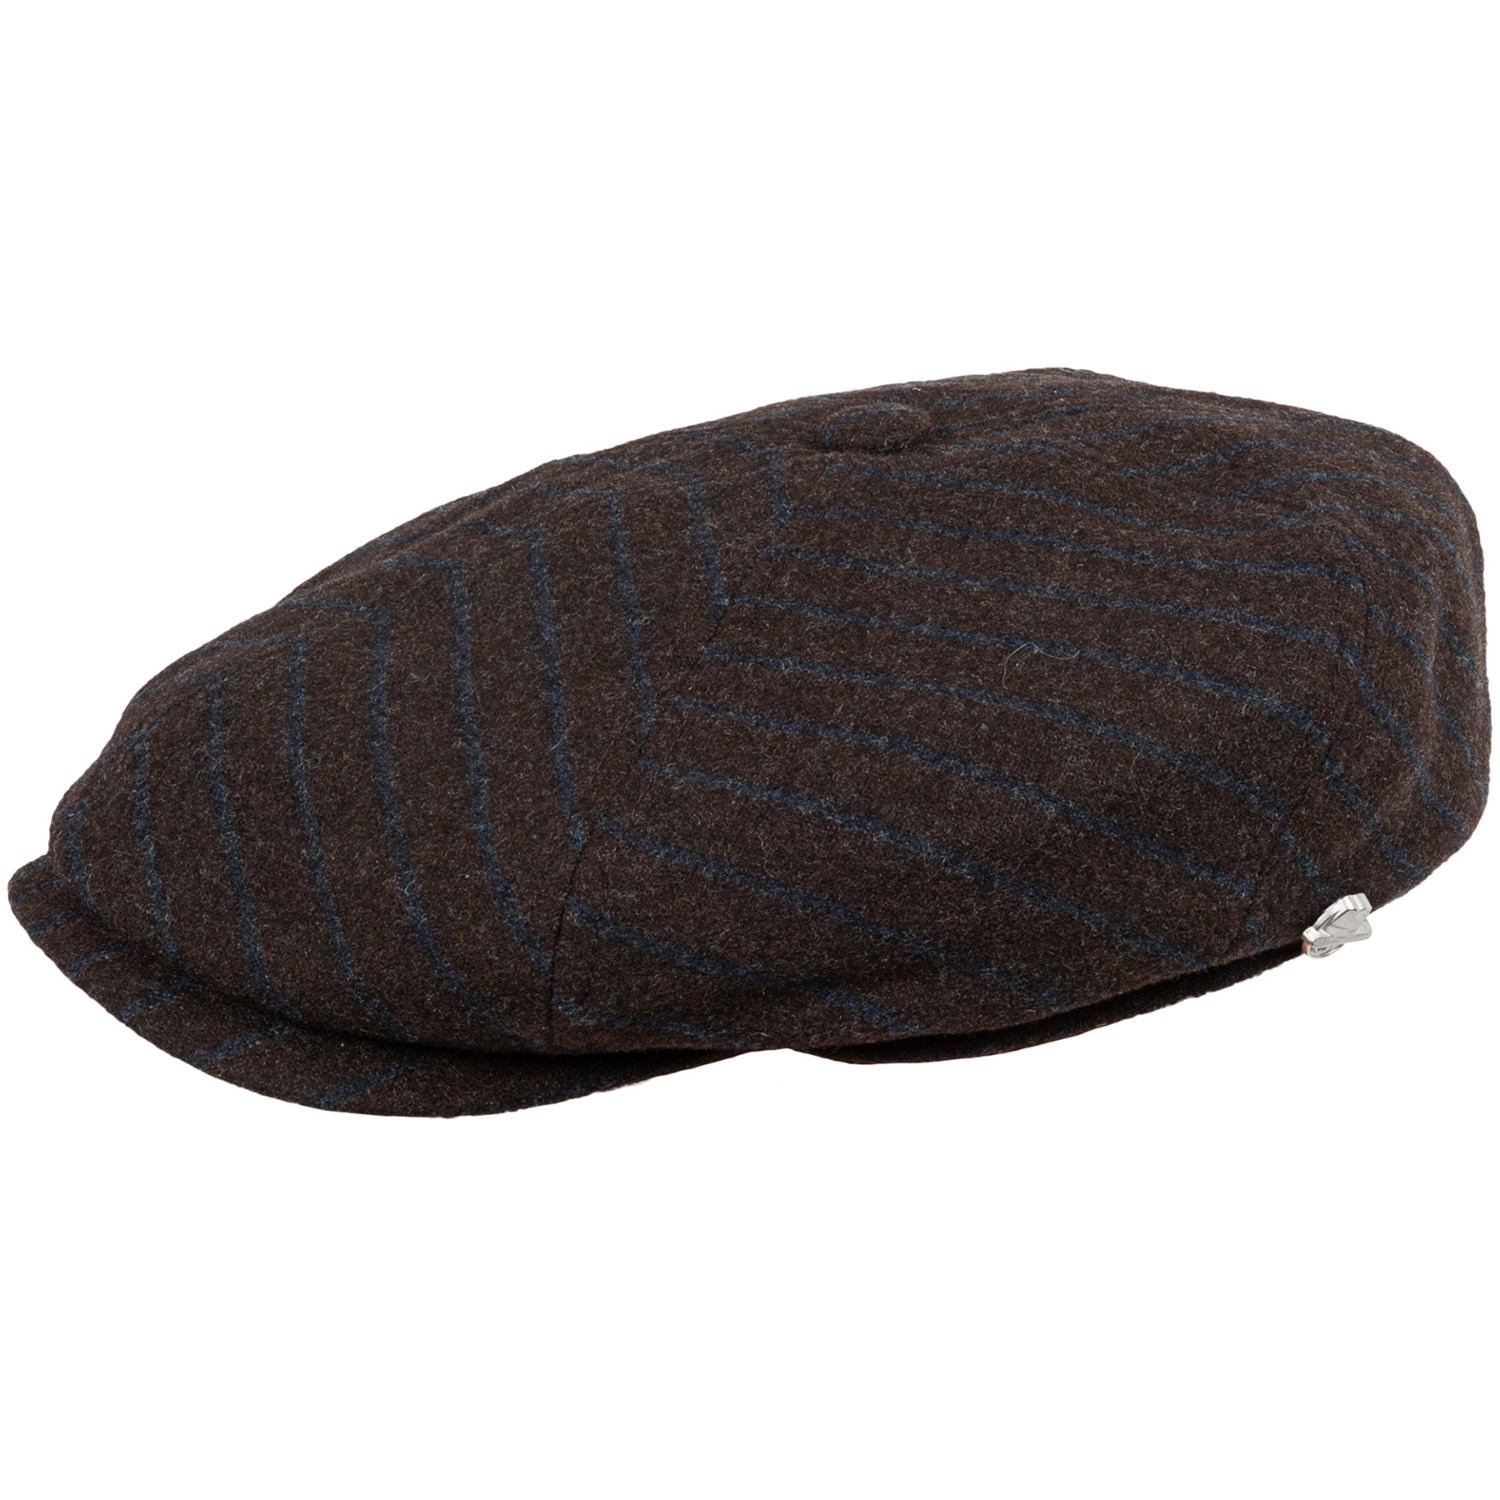 Find great deals on eBay for mens hats newsboy. Shop with confidence.